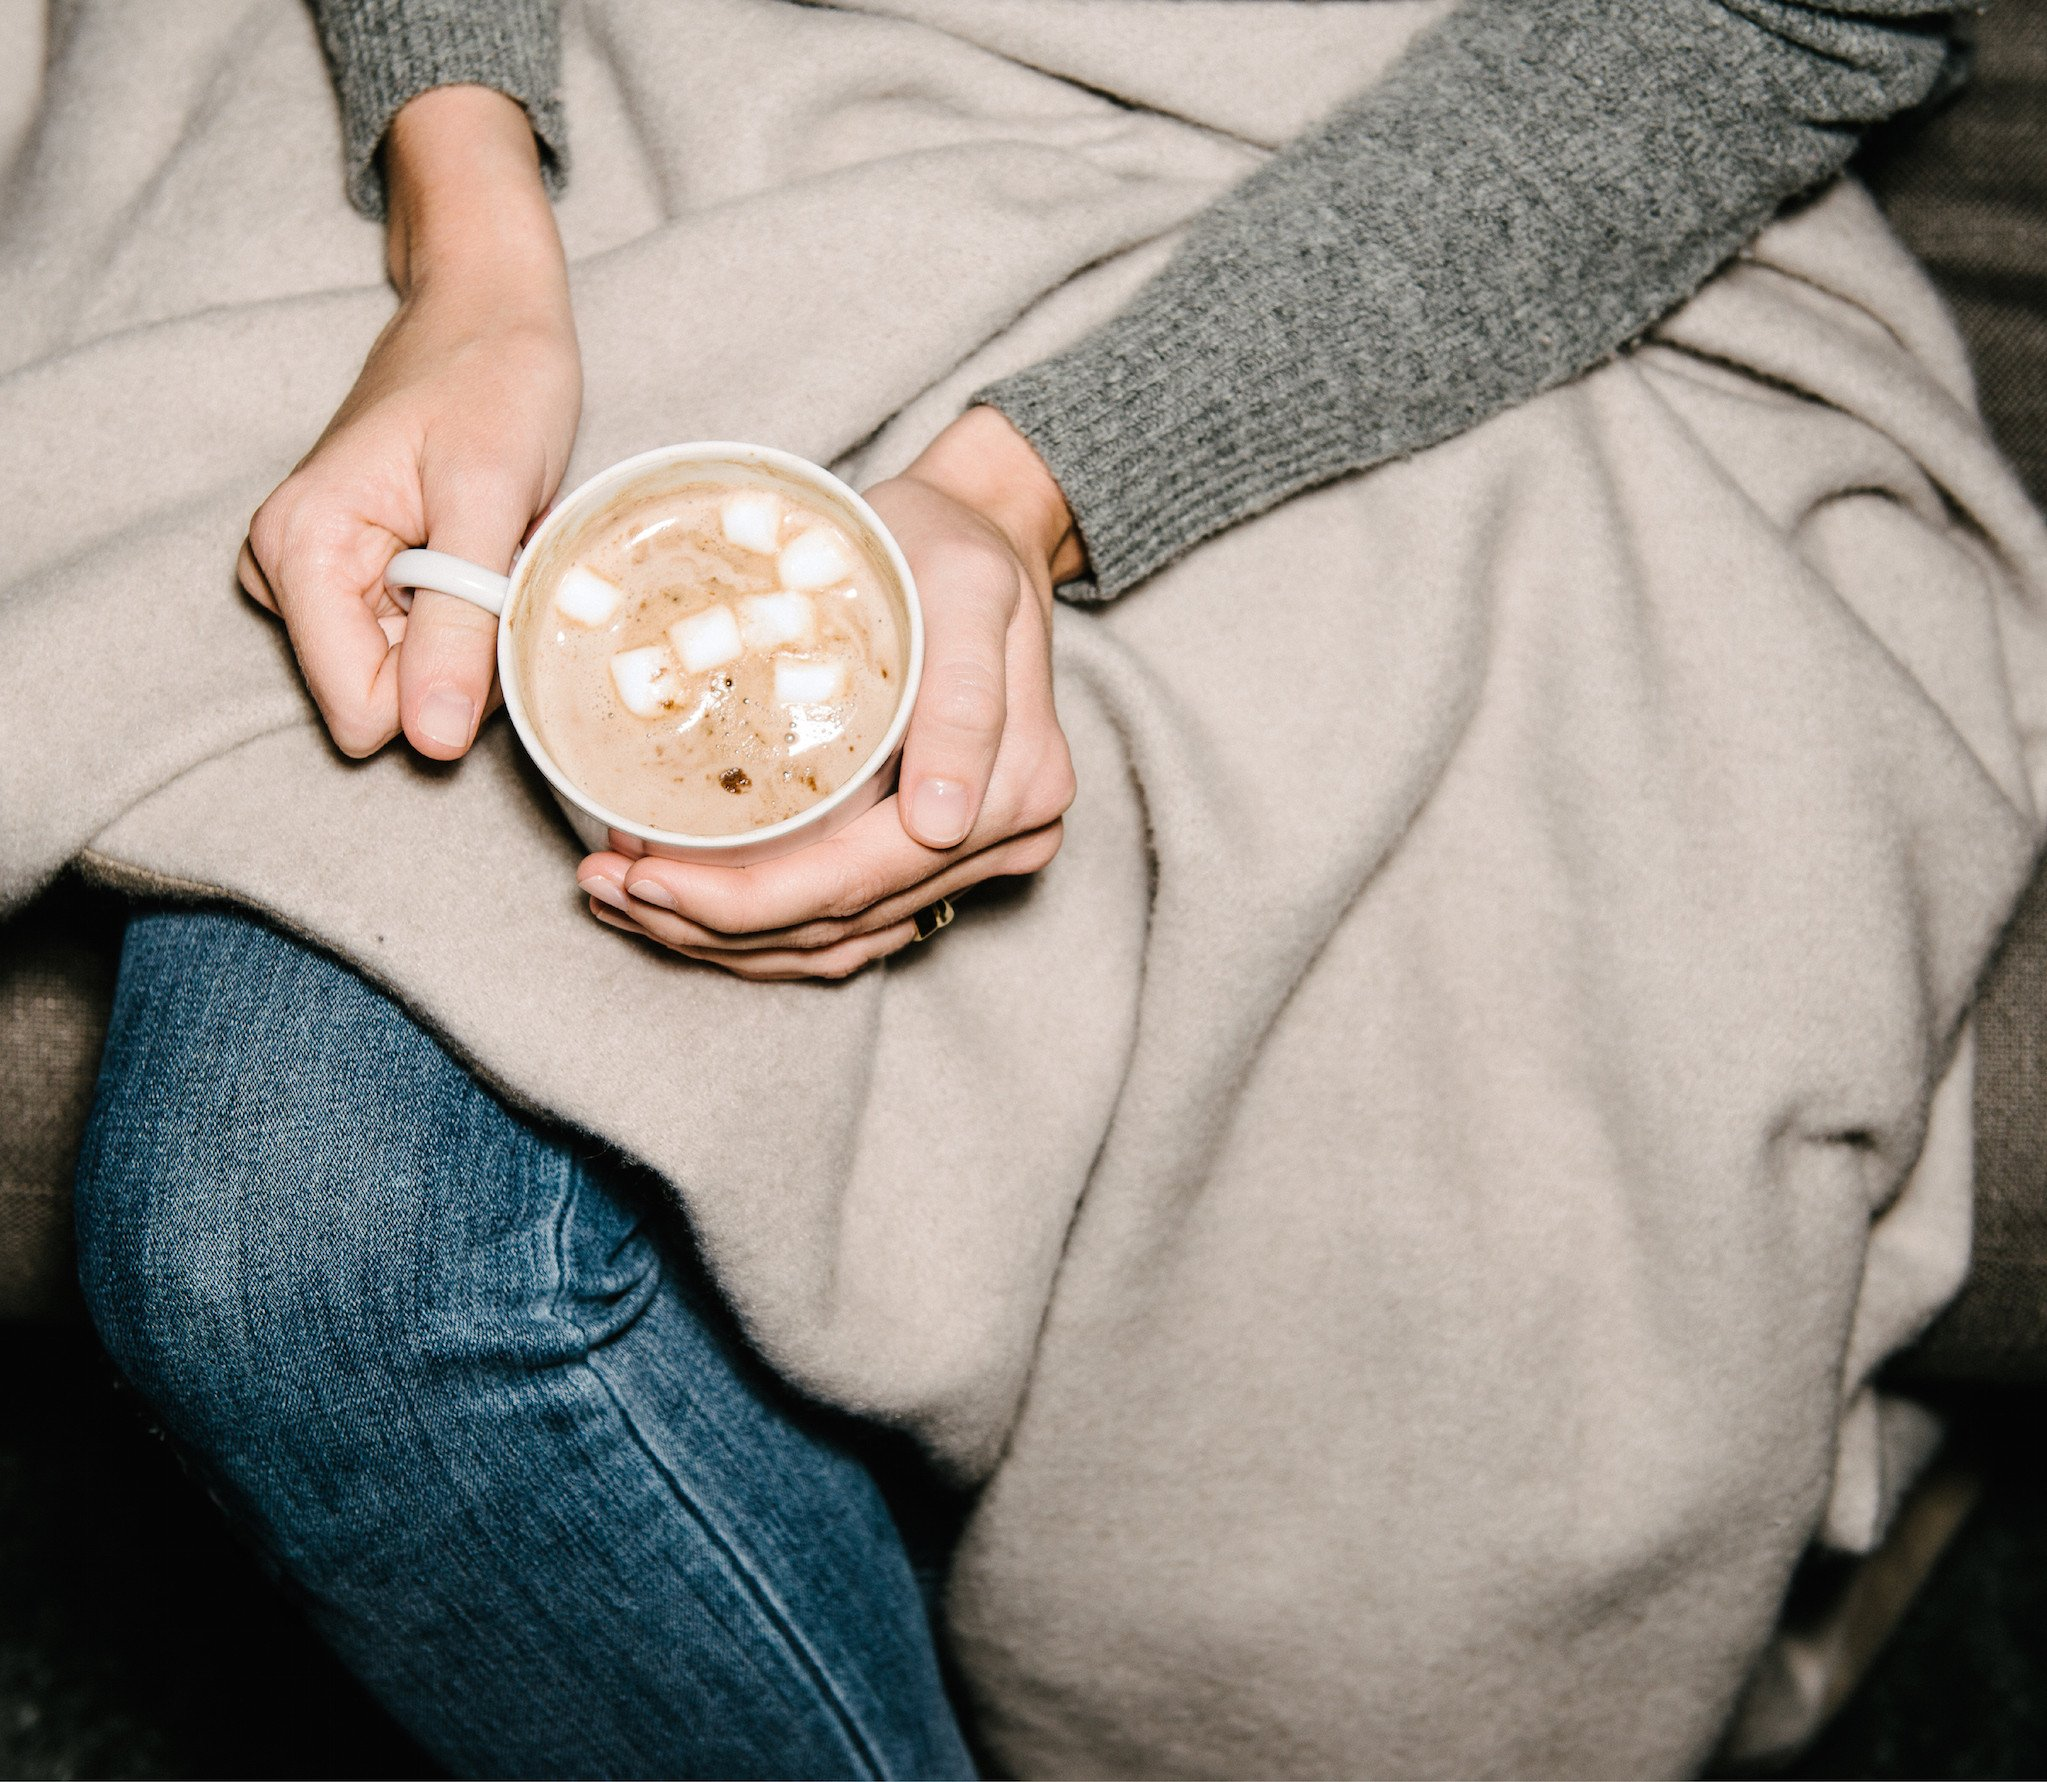 Settle down with a warm cup of cocoa and a cozy blanket, you will fall asleep in no time.